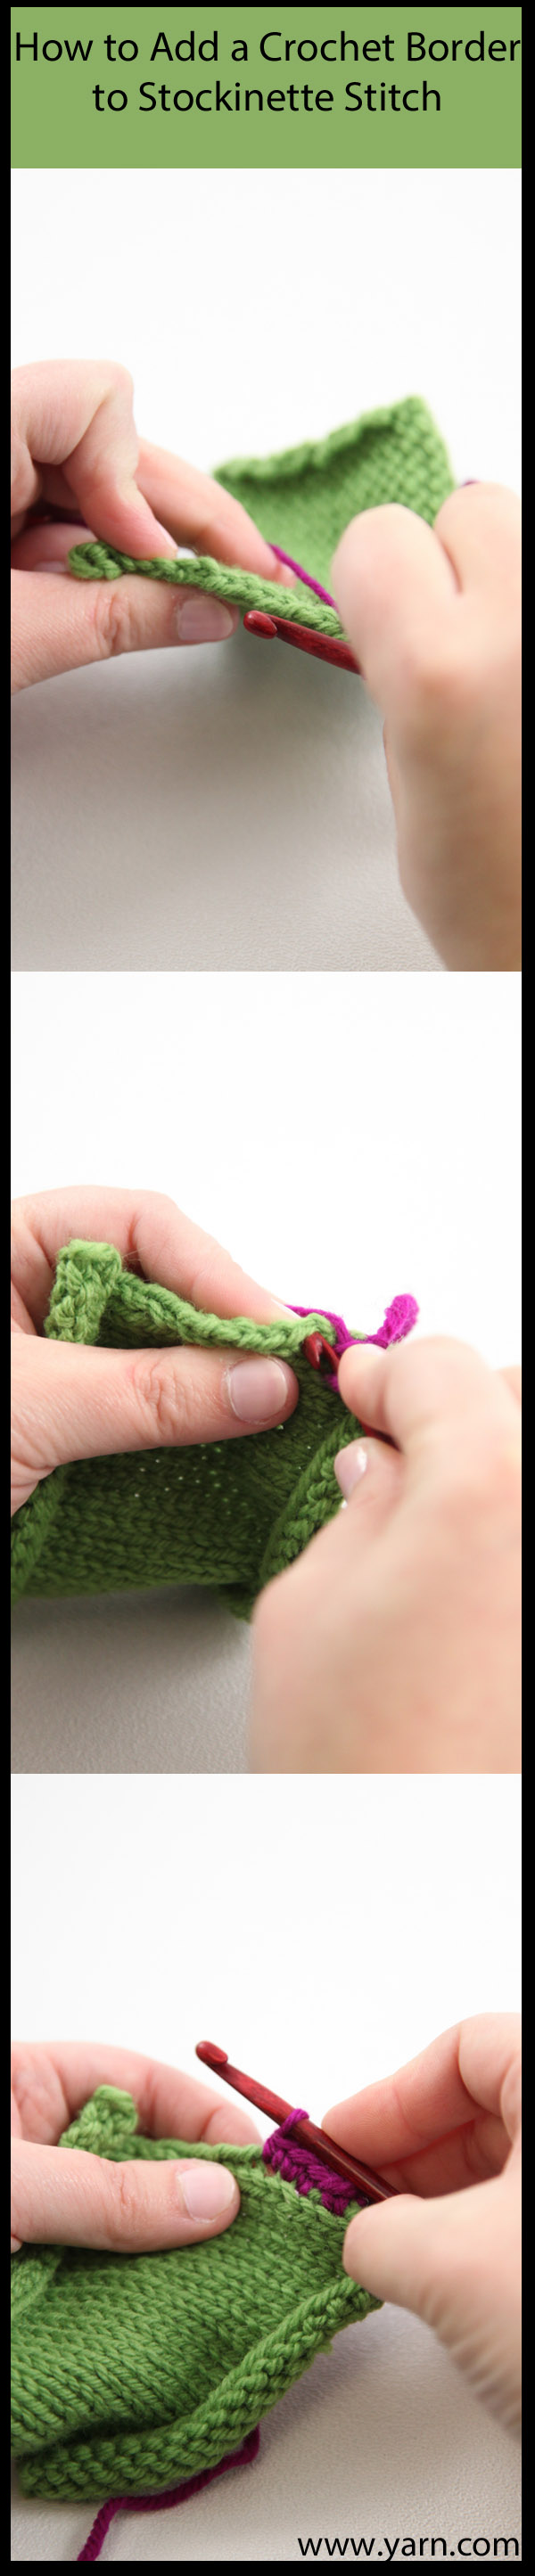 WEBS Yarn Store Blog   Tuesday s Crochet Tip   Adding a Crochet Border to Kni...